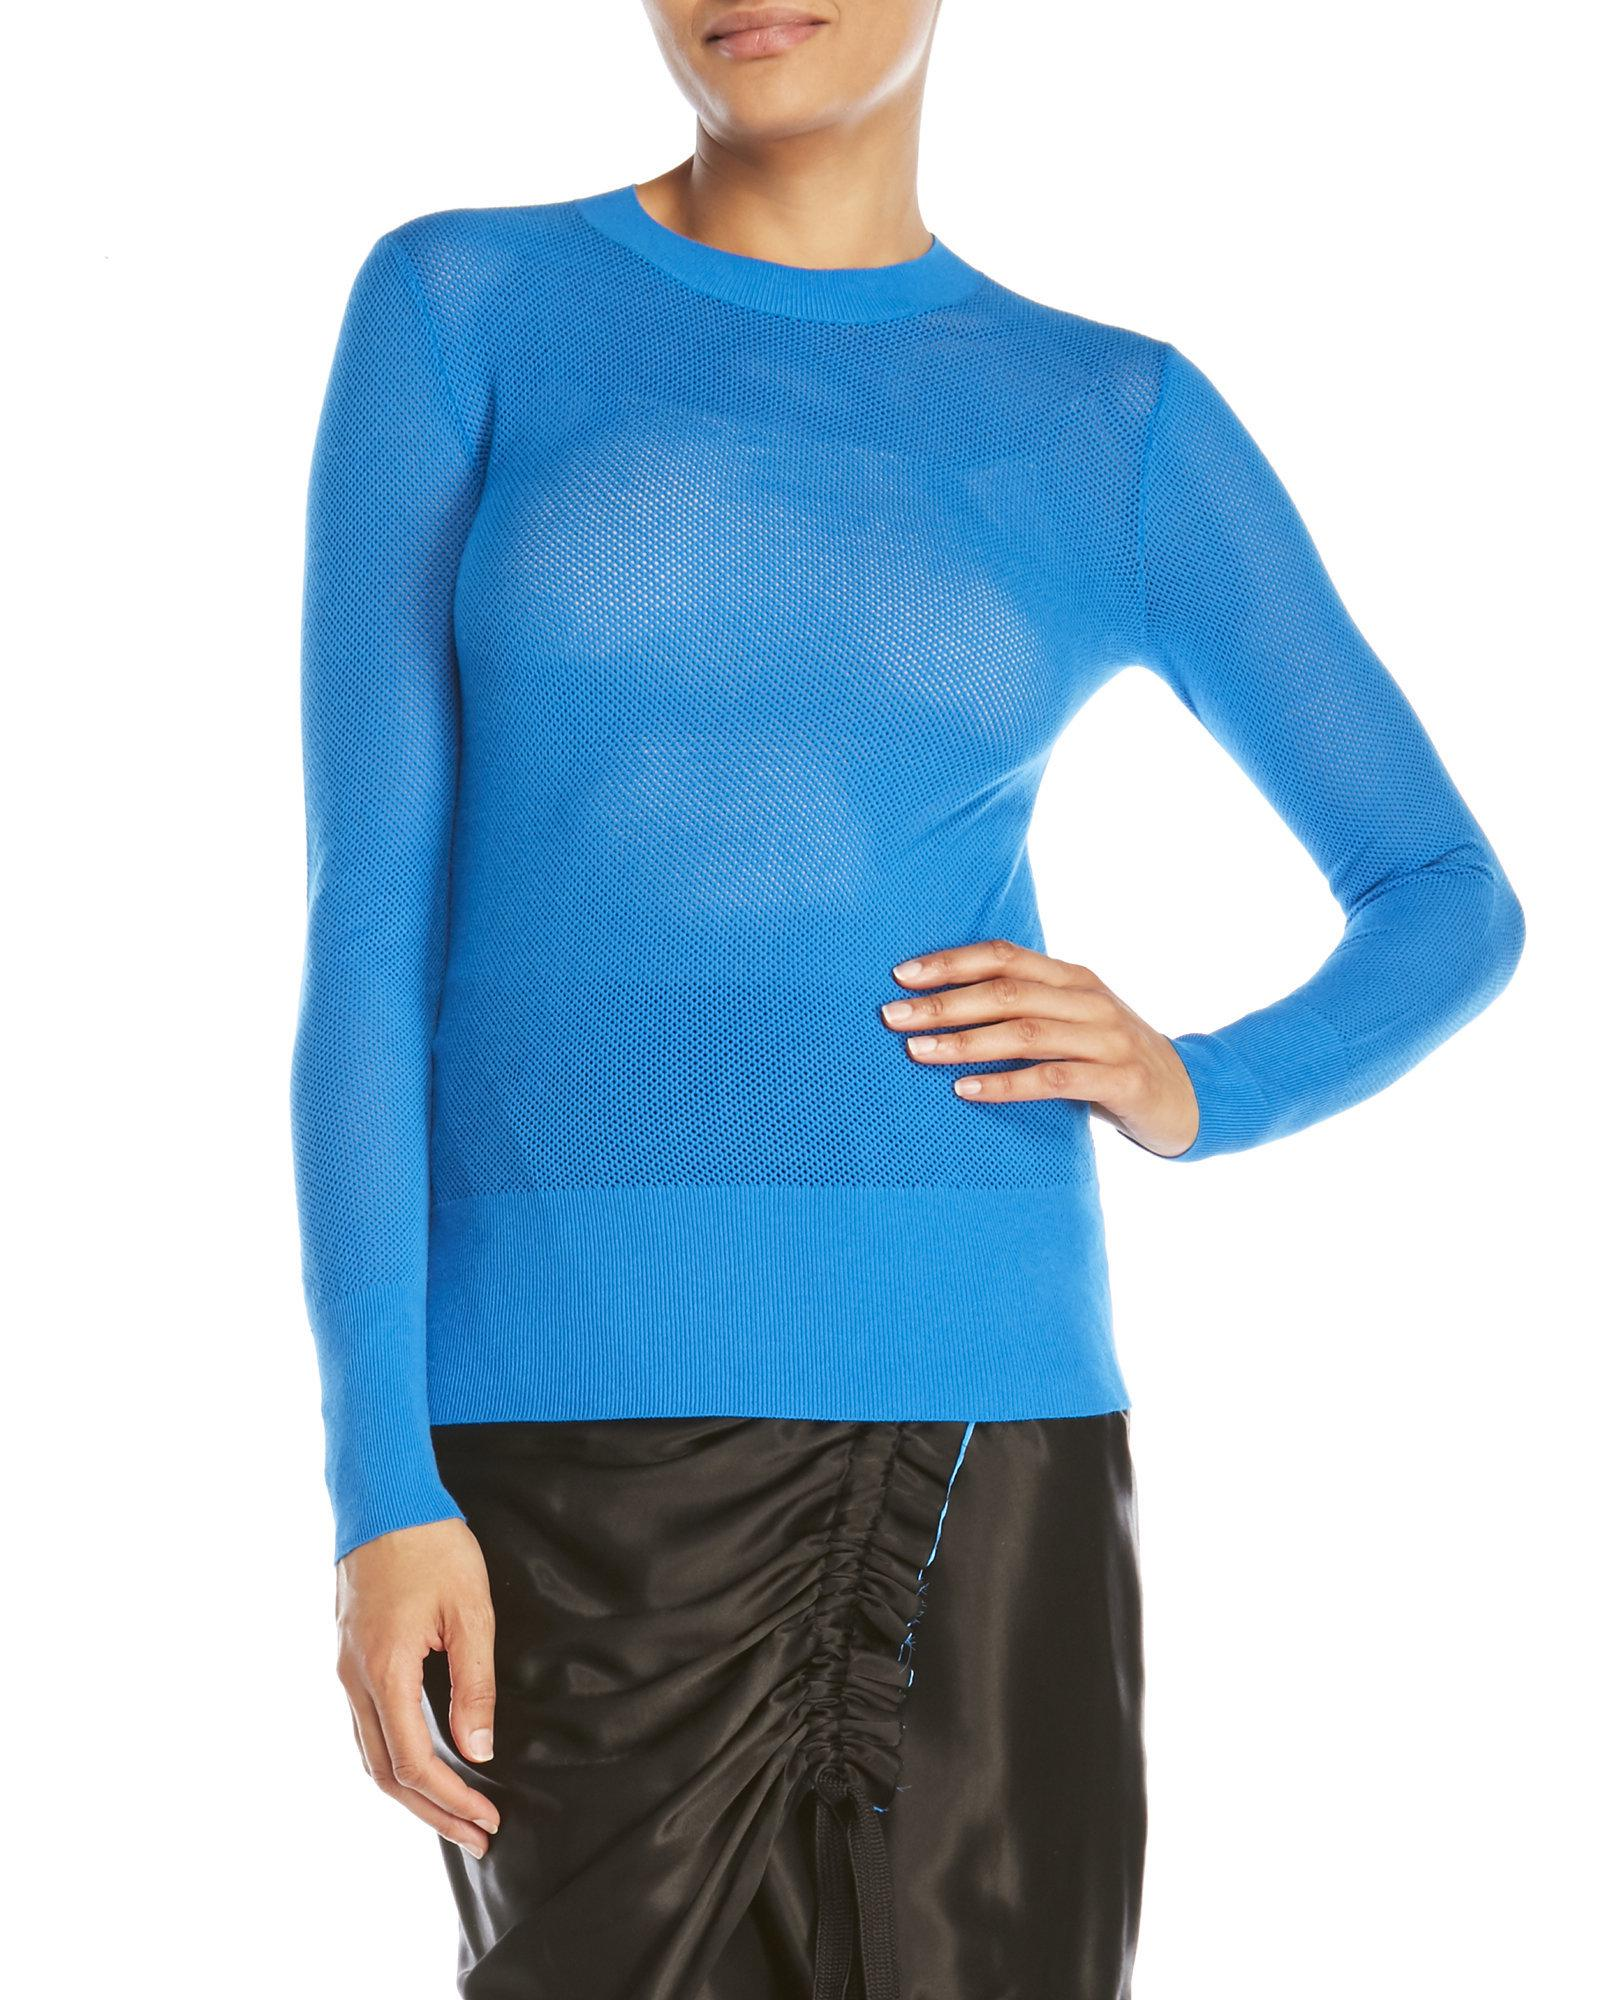 Dkny Long Sleeve Mesh Pullover Sweater in Blue | Lyst